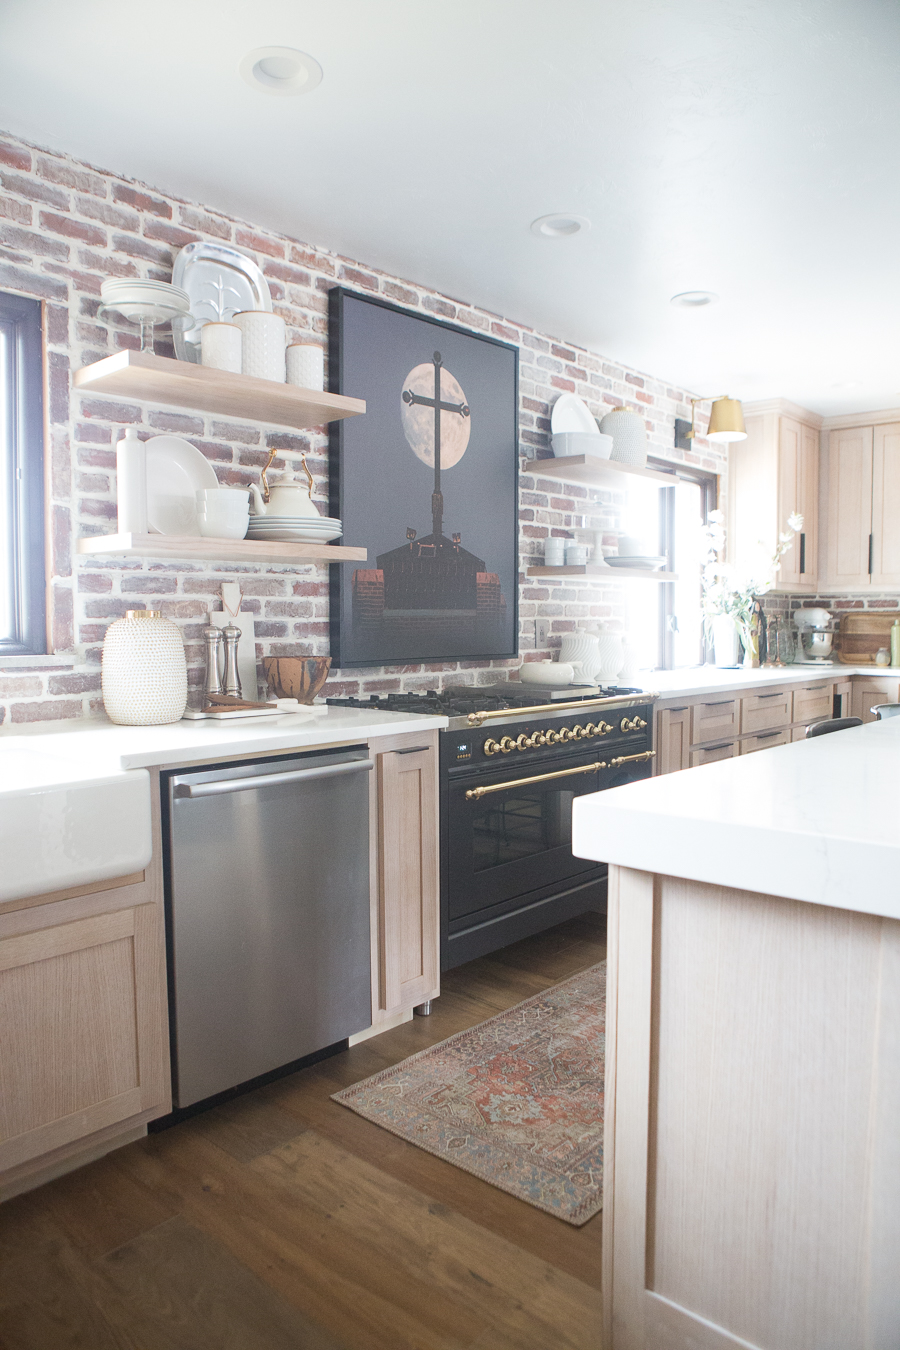 the kane project kitchen with brick featured wall